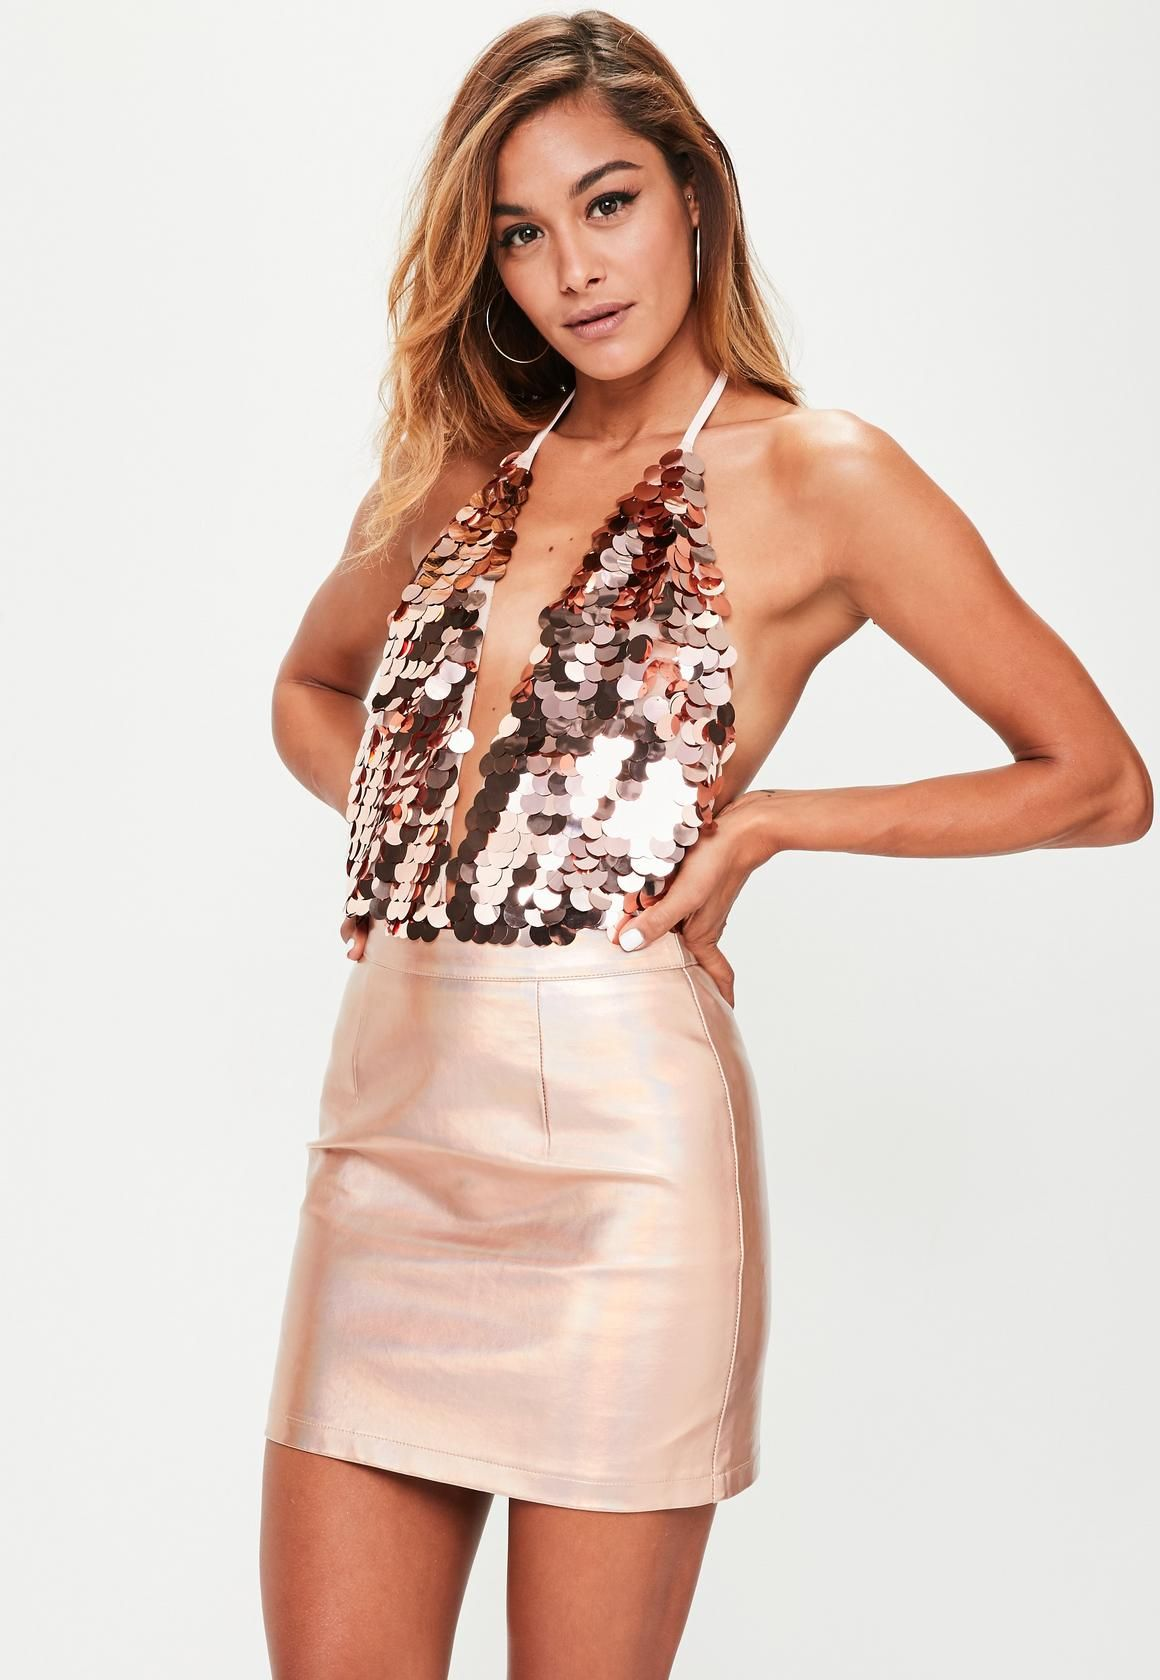 32666fbb4dcb Missguided - Rose Gold Mermaid Sequin Bodysuit